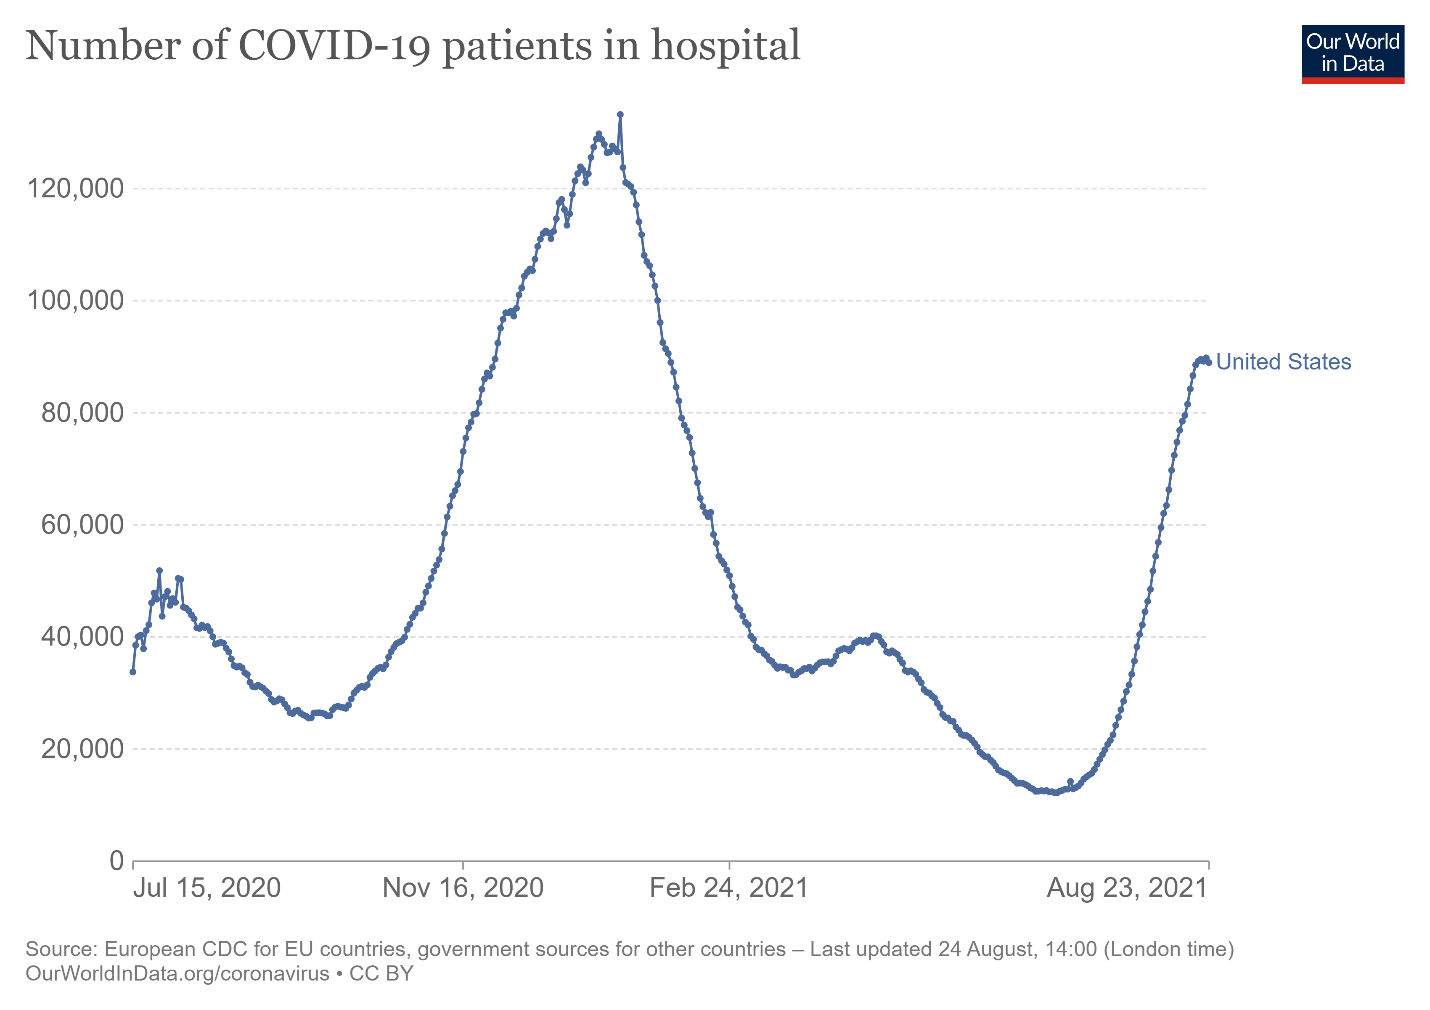 Despite rising medical risks, Commonwealth CIO Brad McMillan believes we're in a much better place than a couple of months ago.